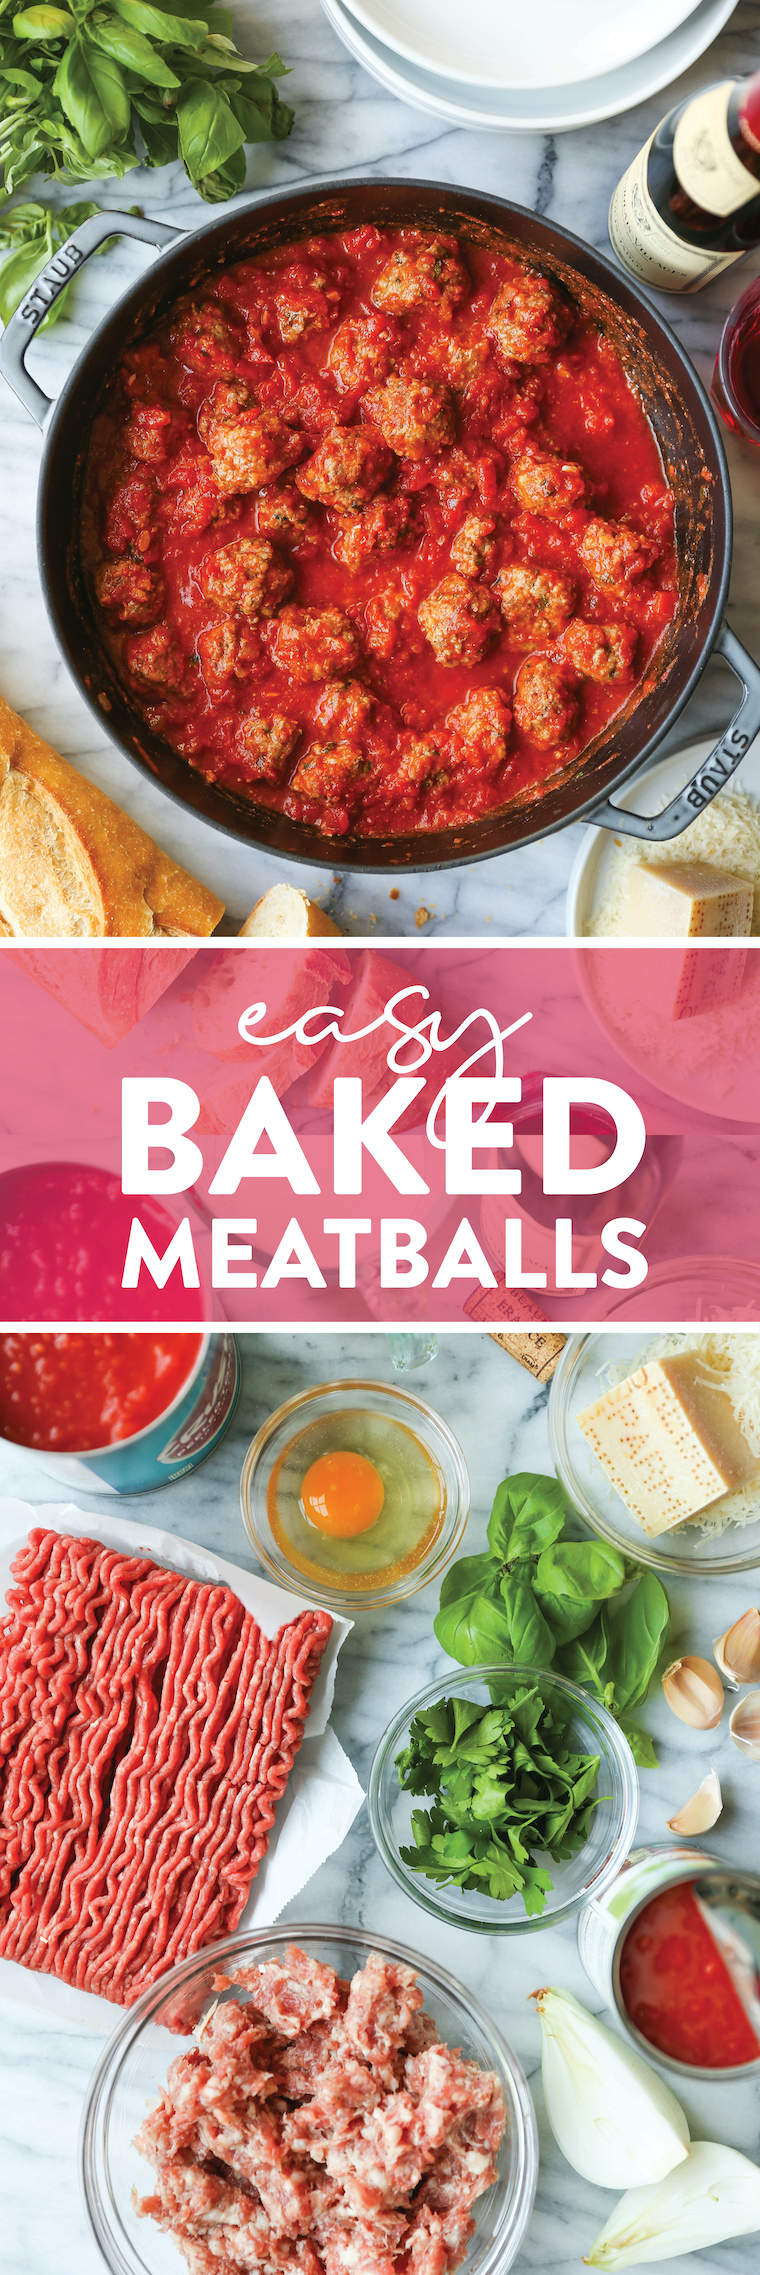 Easy Oven Meatballs - The ONLY Meatball Recipe You Need!  The meatballs are so perfect and so tender.  Serve over pasta, polenta or subs!